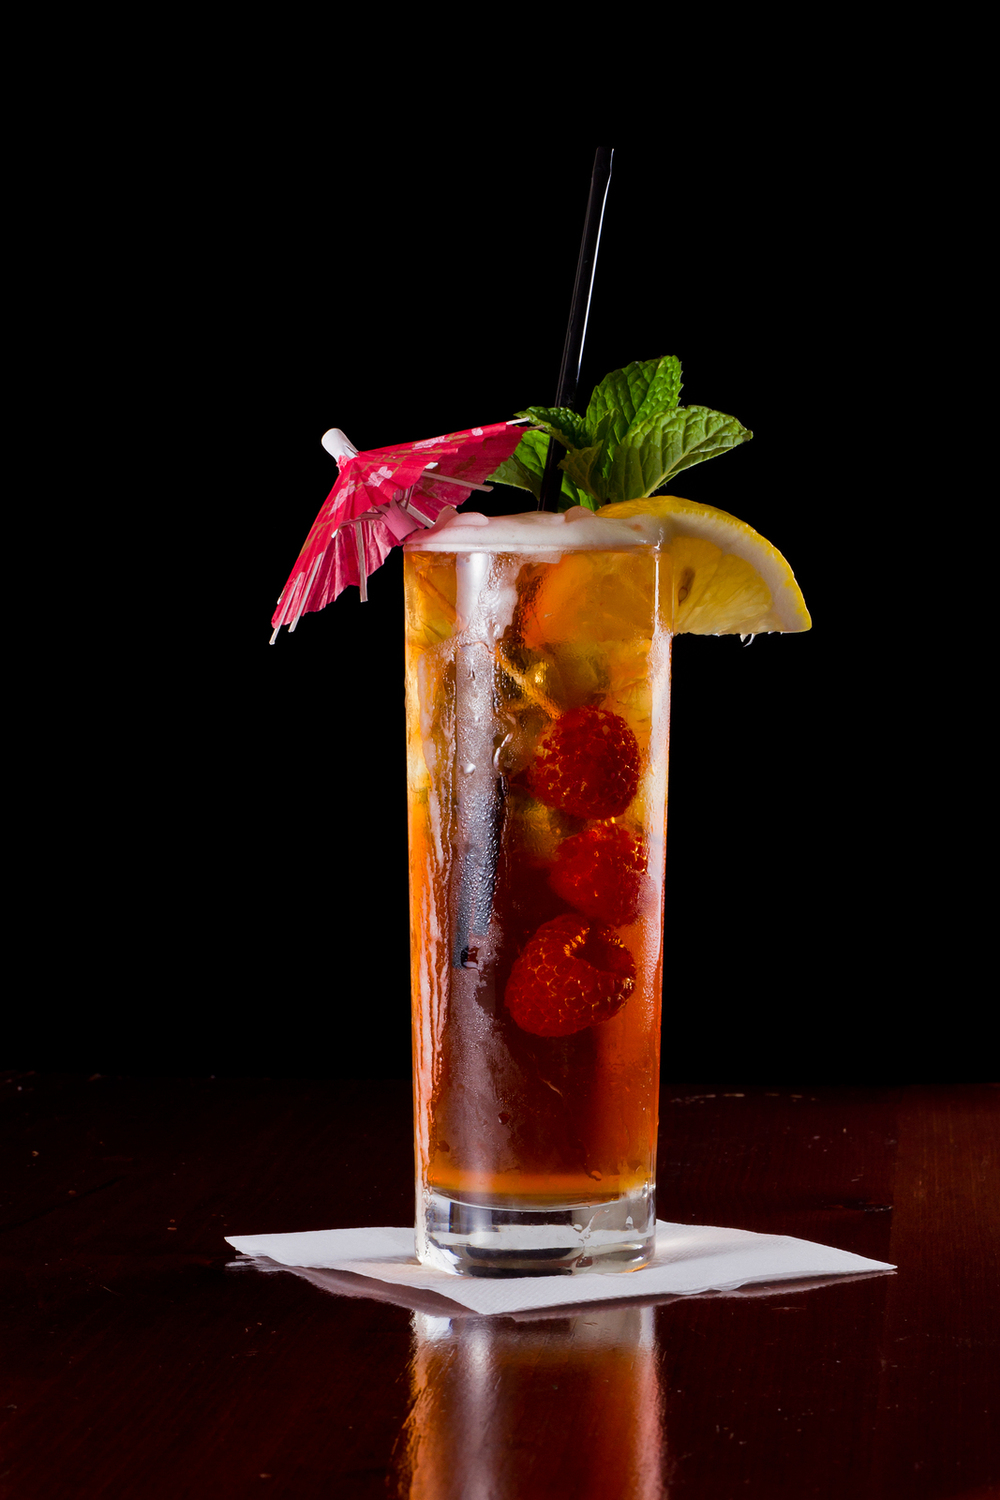 Top-10-Most-Popular-Cocktails-In-The-World-Long-Island-Iced-Tea